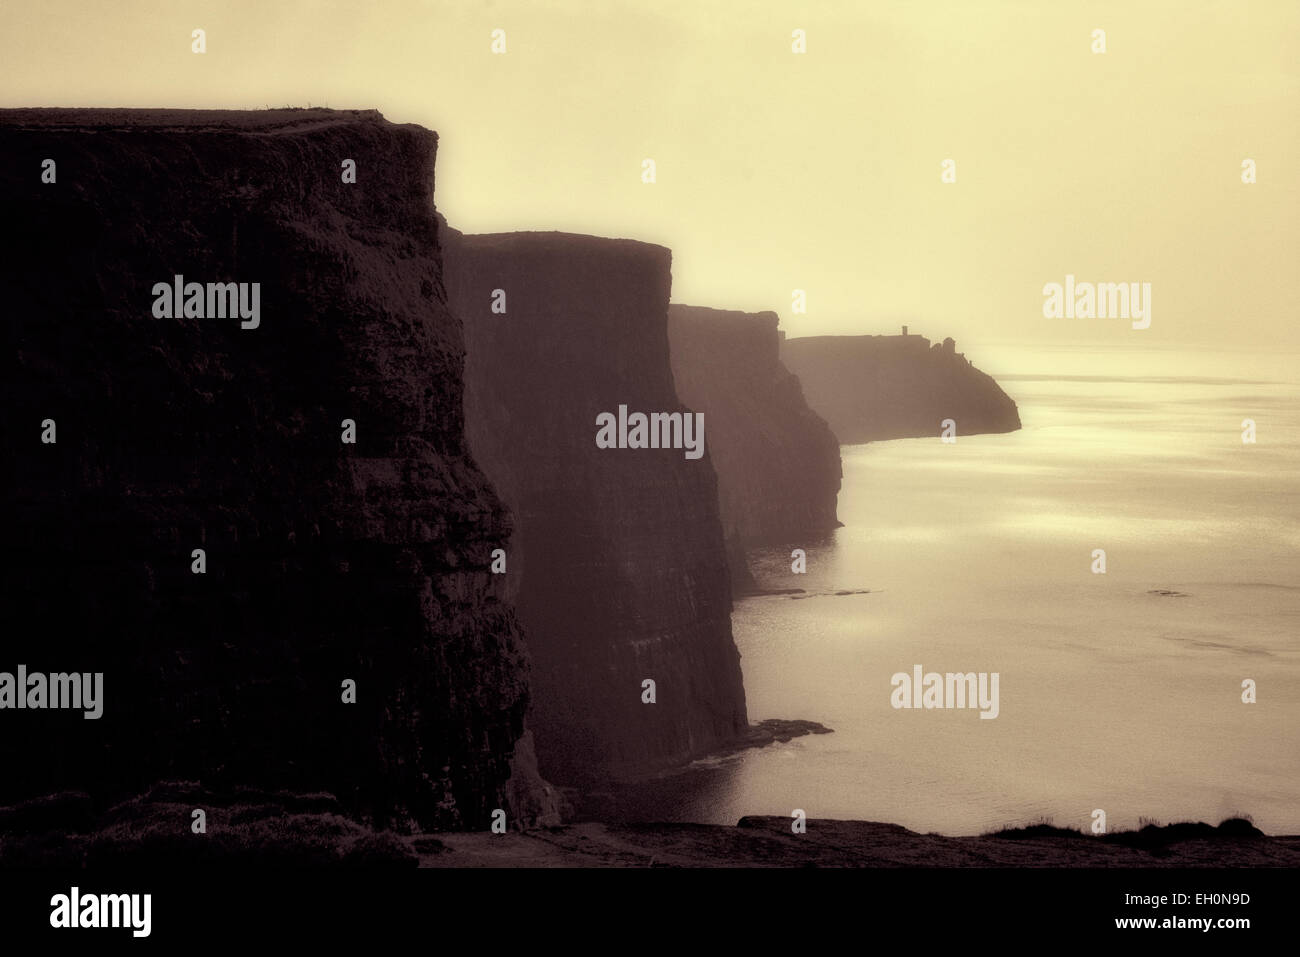 Cliffs of Moher at sunset Ireland - Stock Image